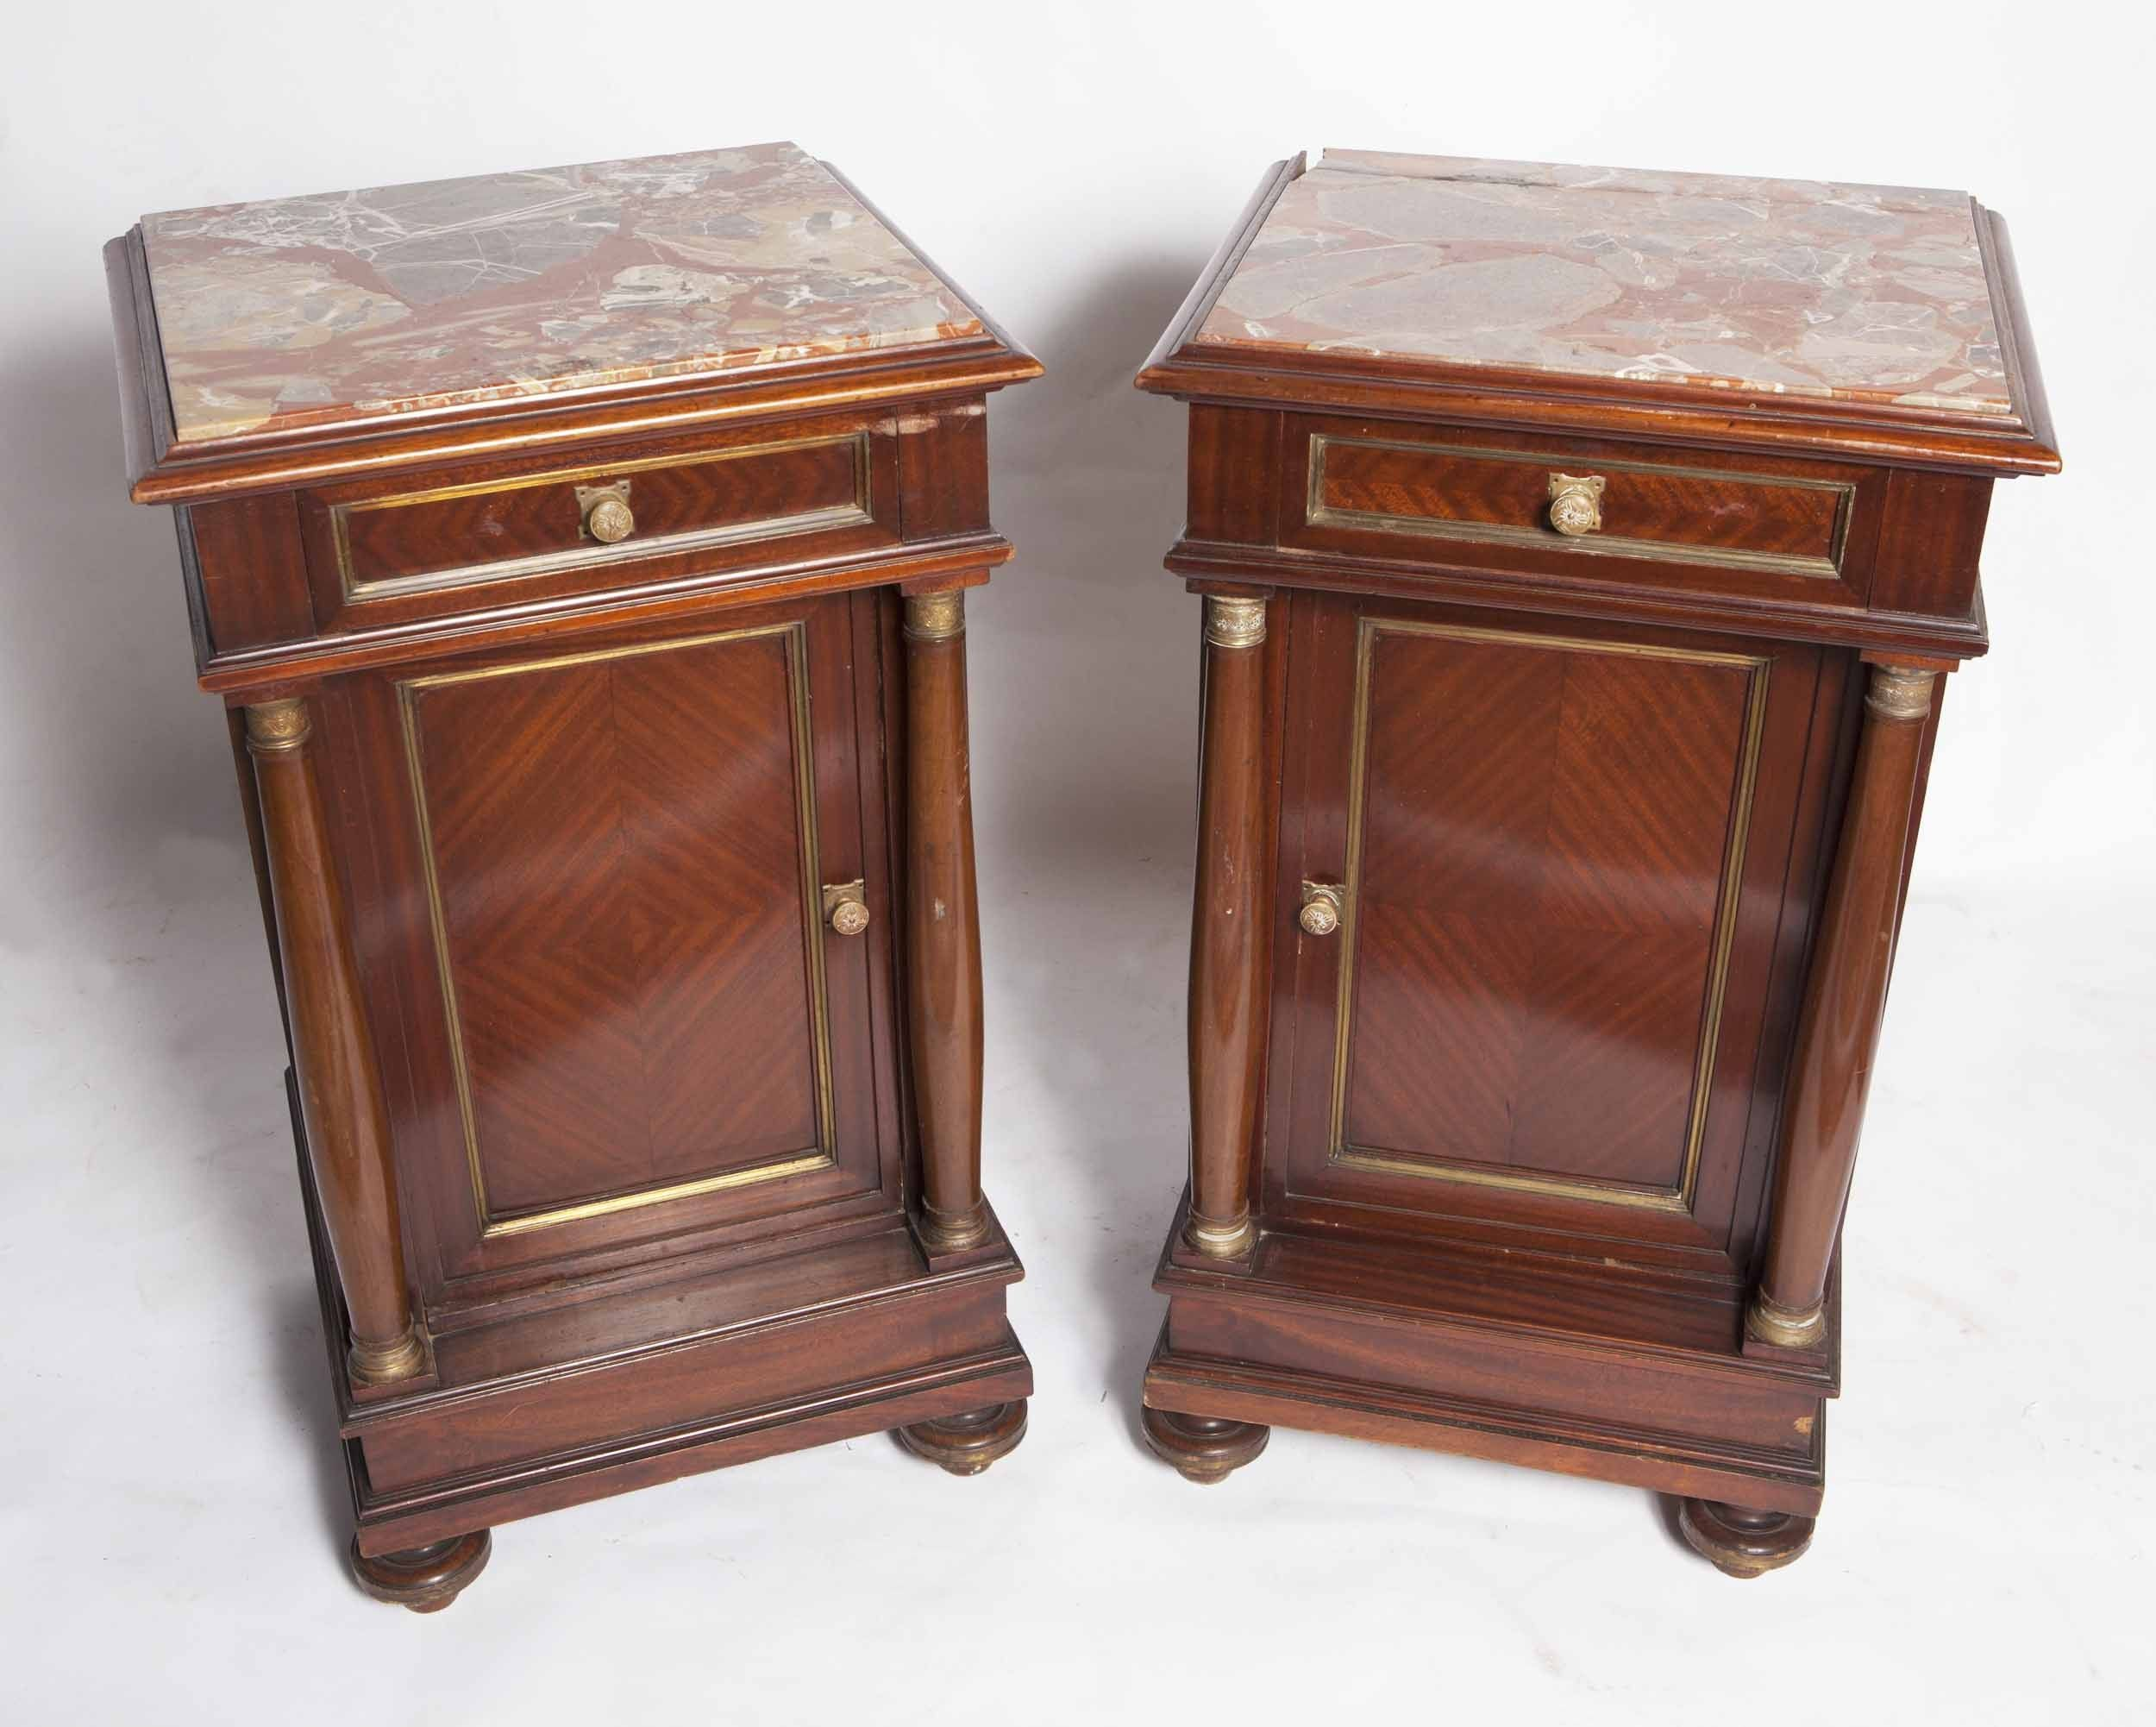 Antique square side table - Unusual Century French Second Empire Antique Bedside Table Furniture Design Ideas With White Marble Tops Over